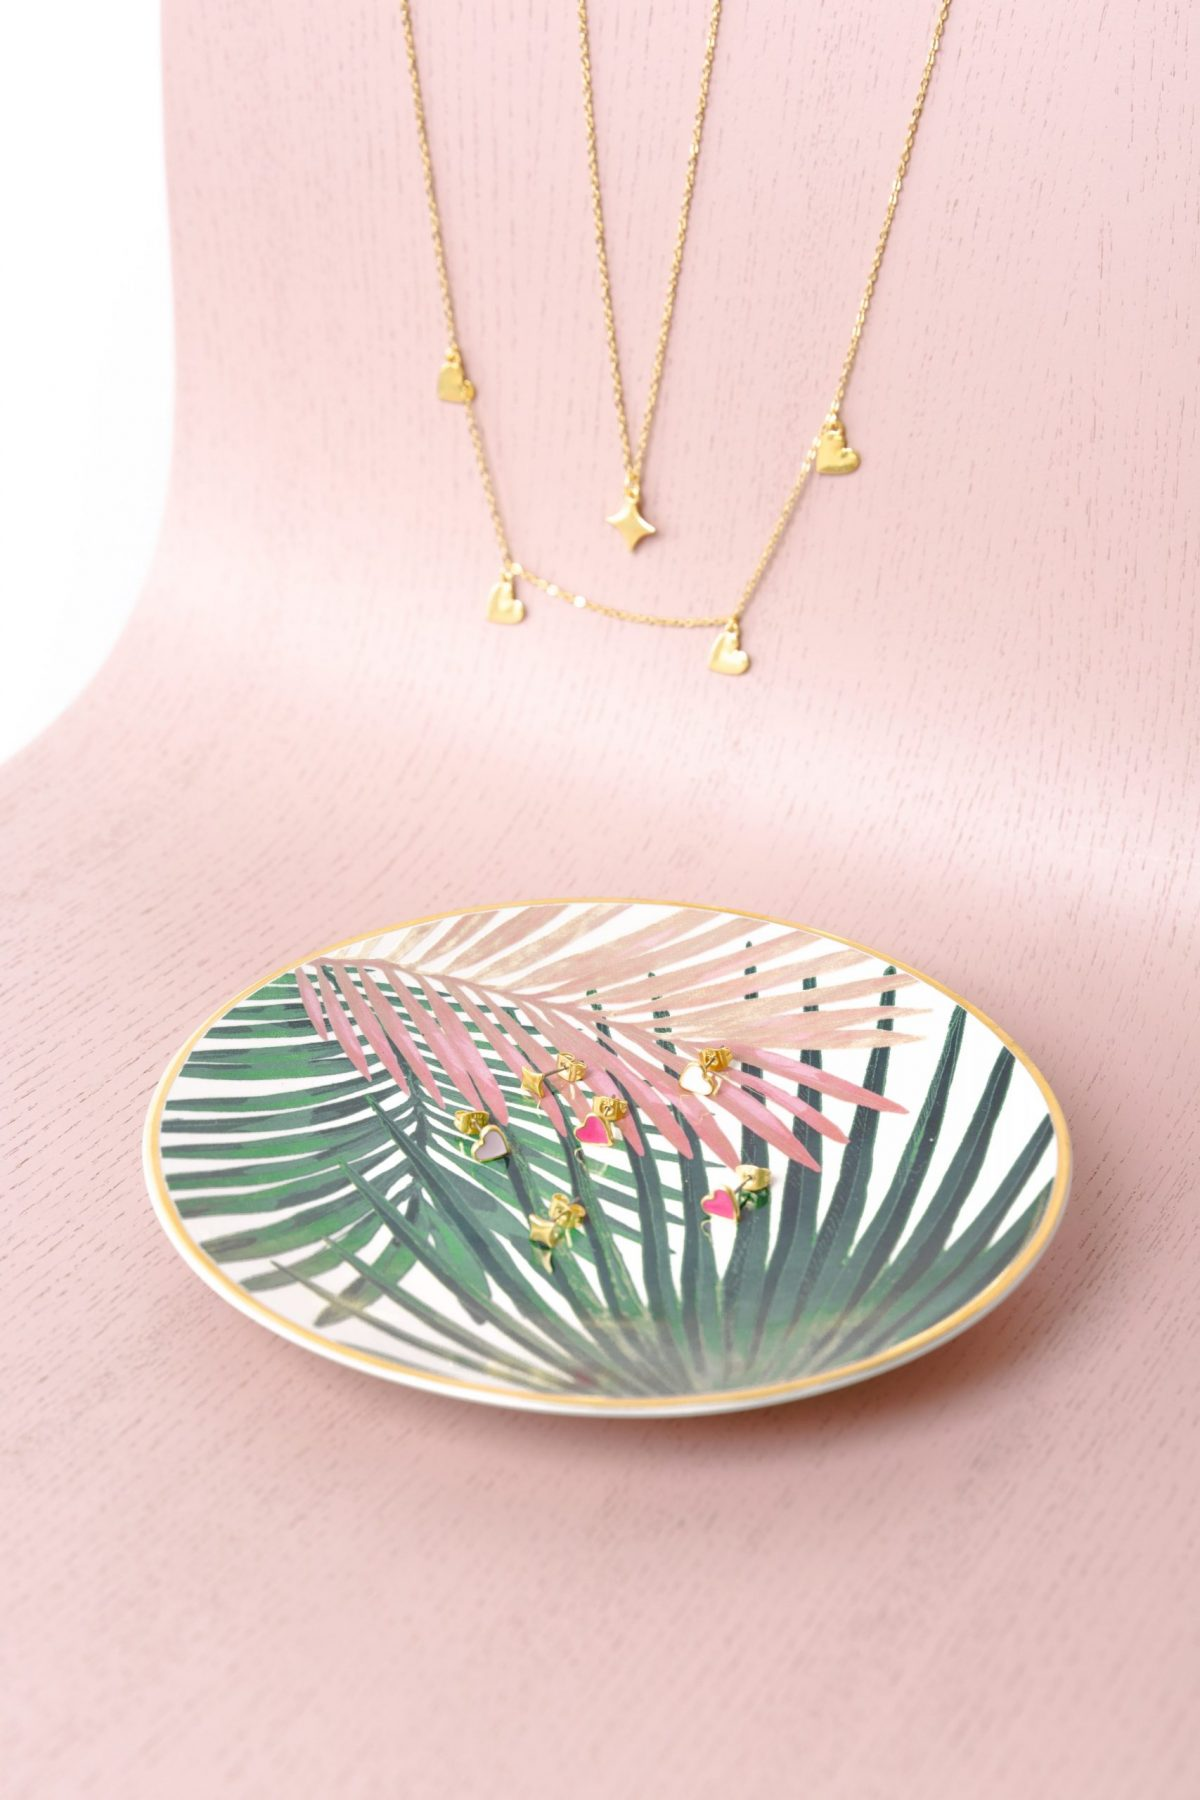 &anne jewelry collection - stylish bracelets, necklaces and earrings